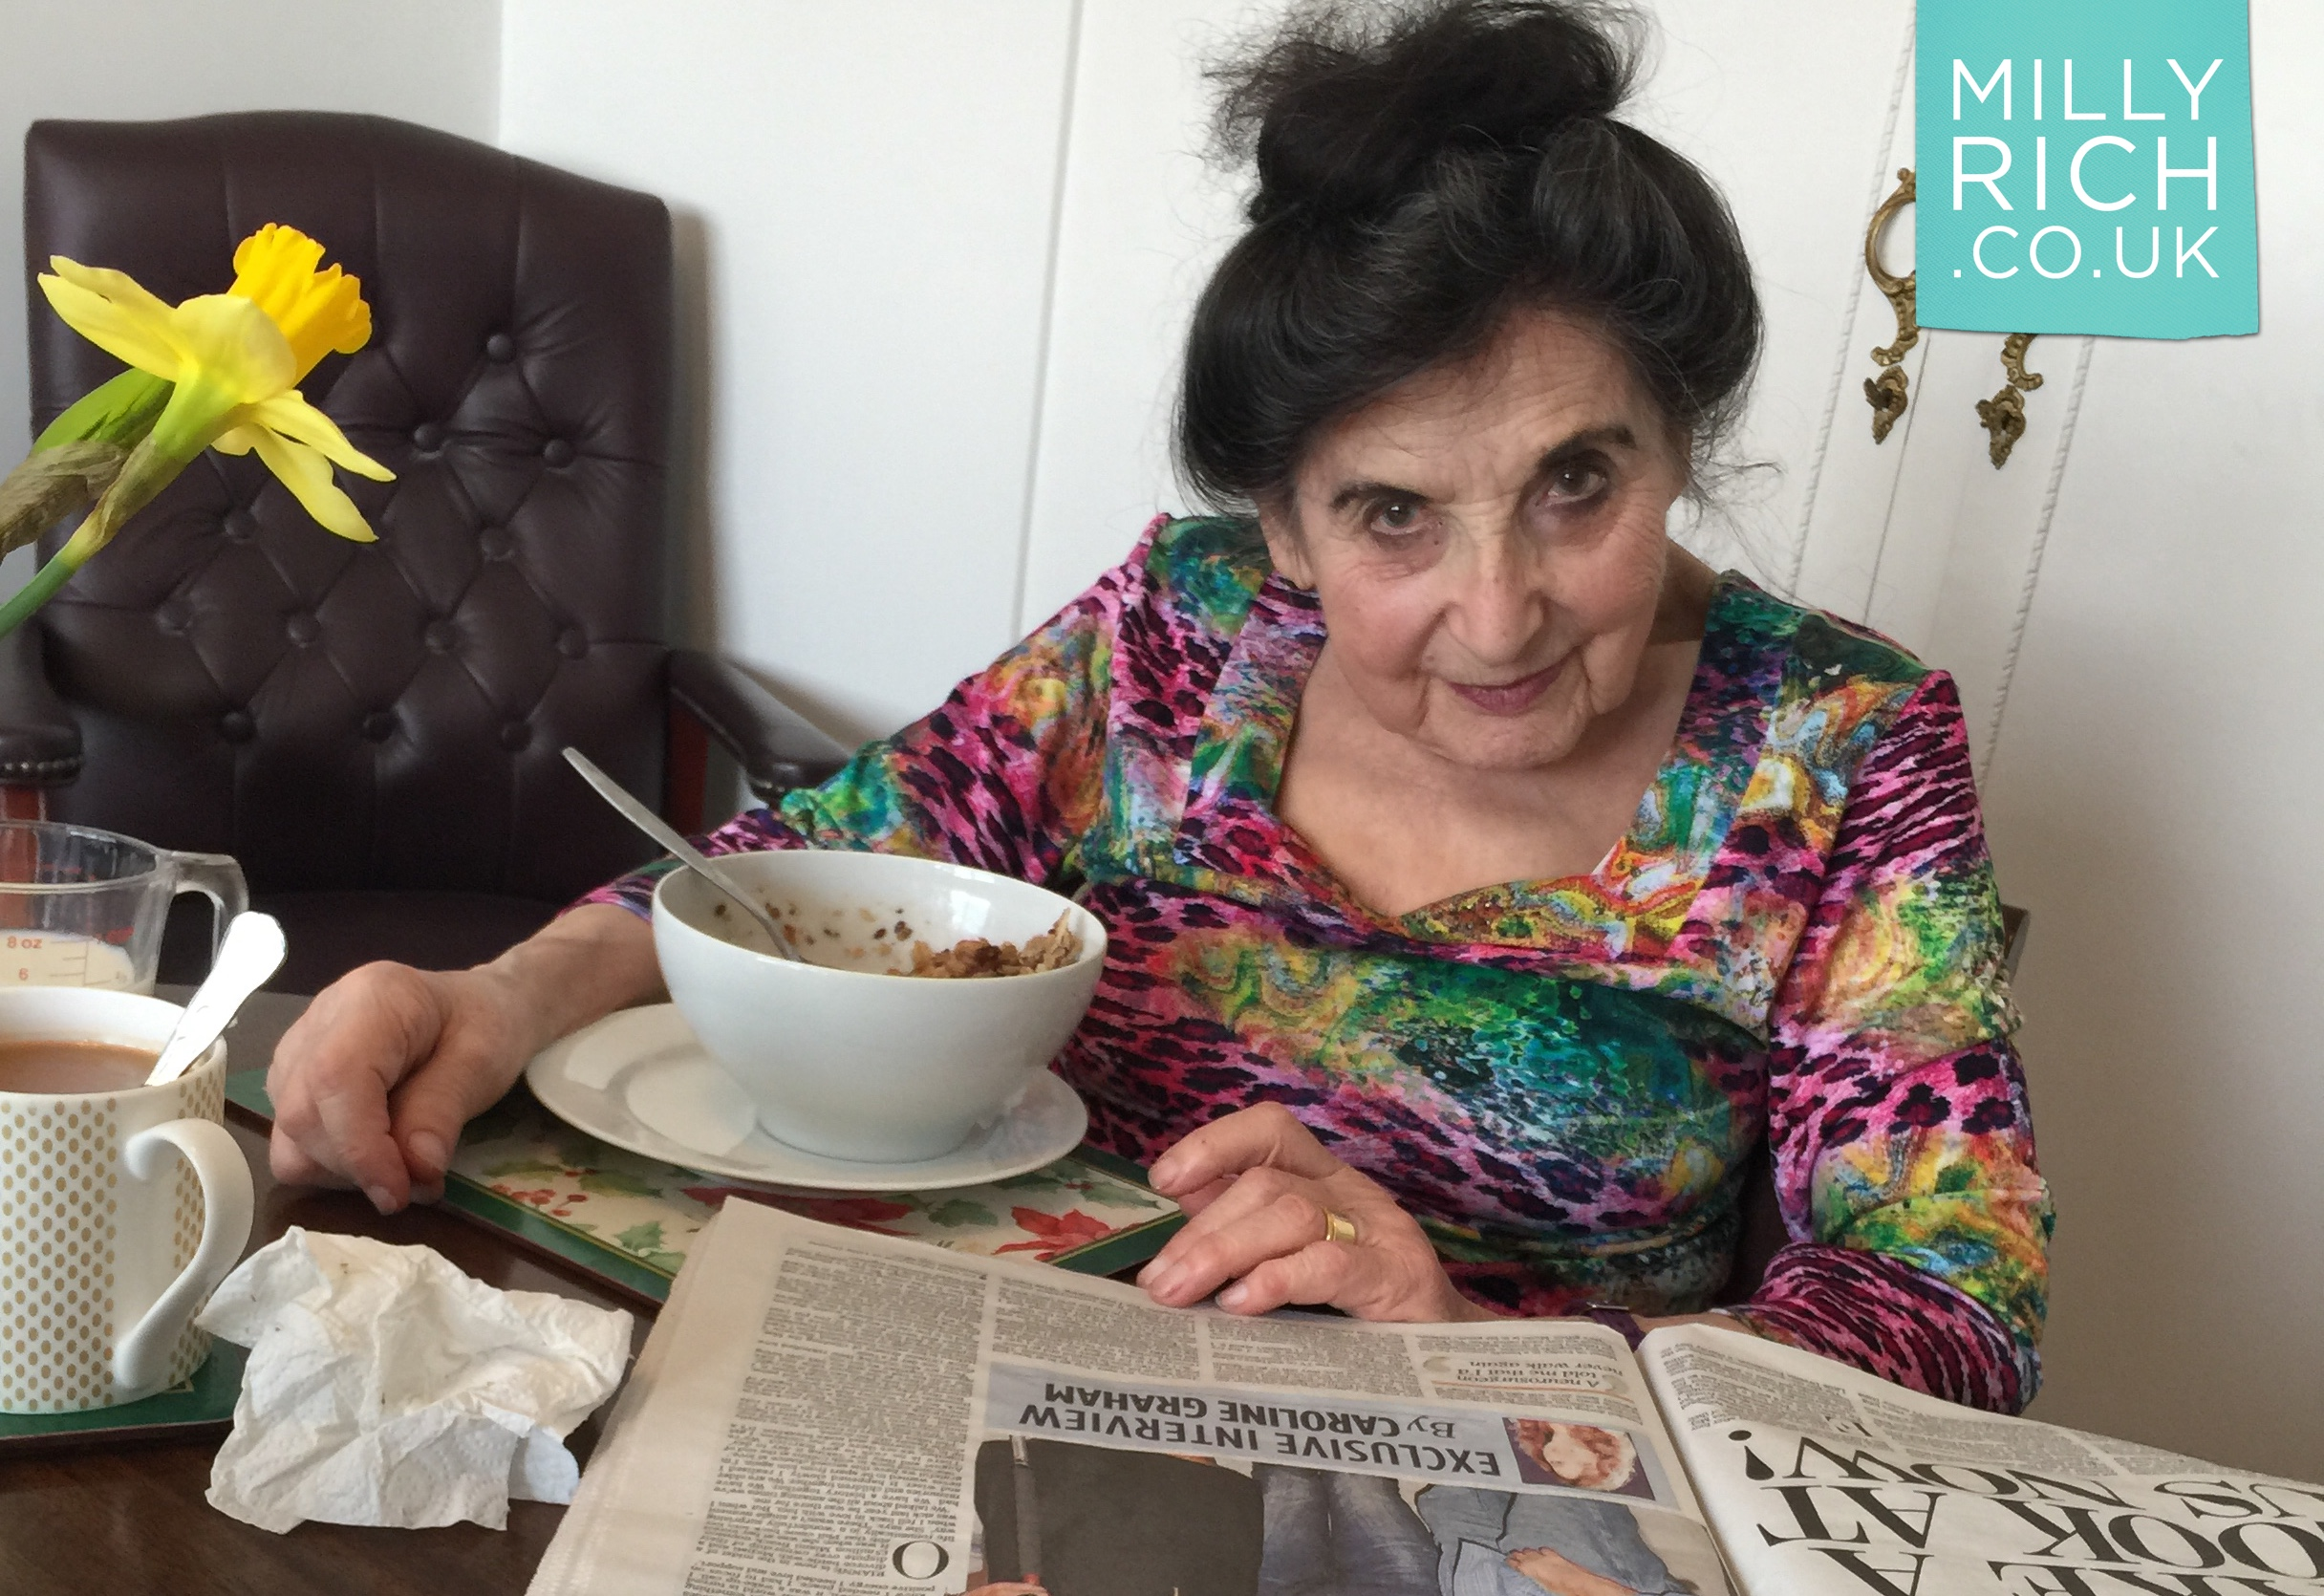 Milly Rich aged 99 reading her morning newspaper July 2017